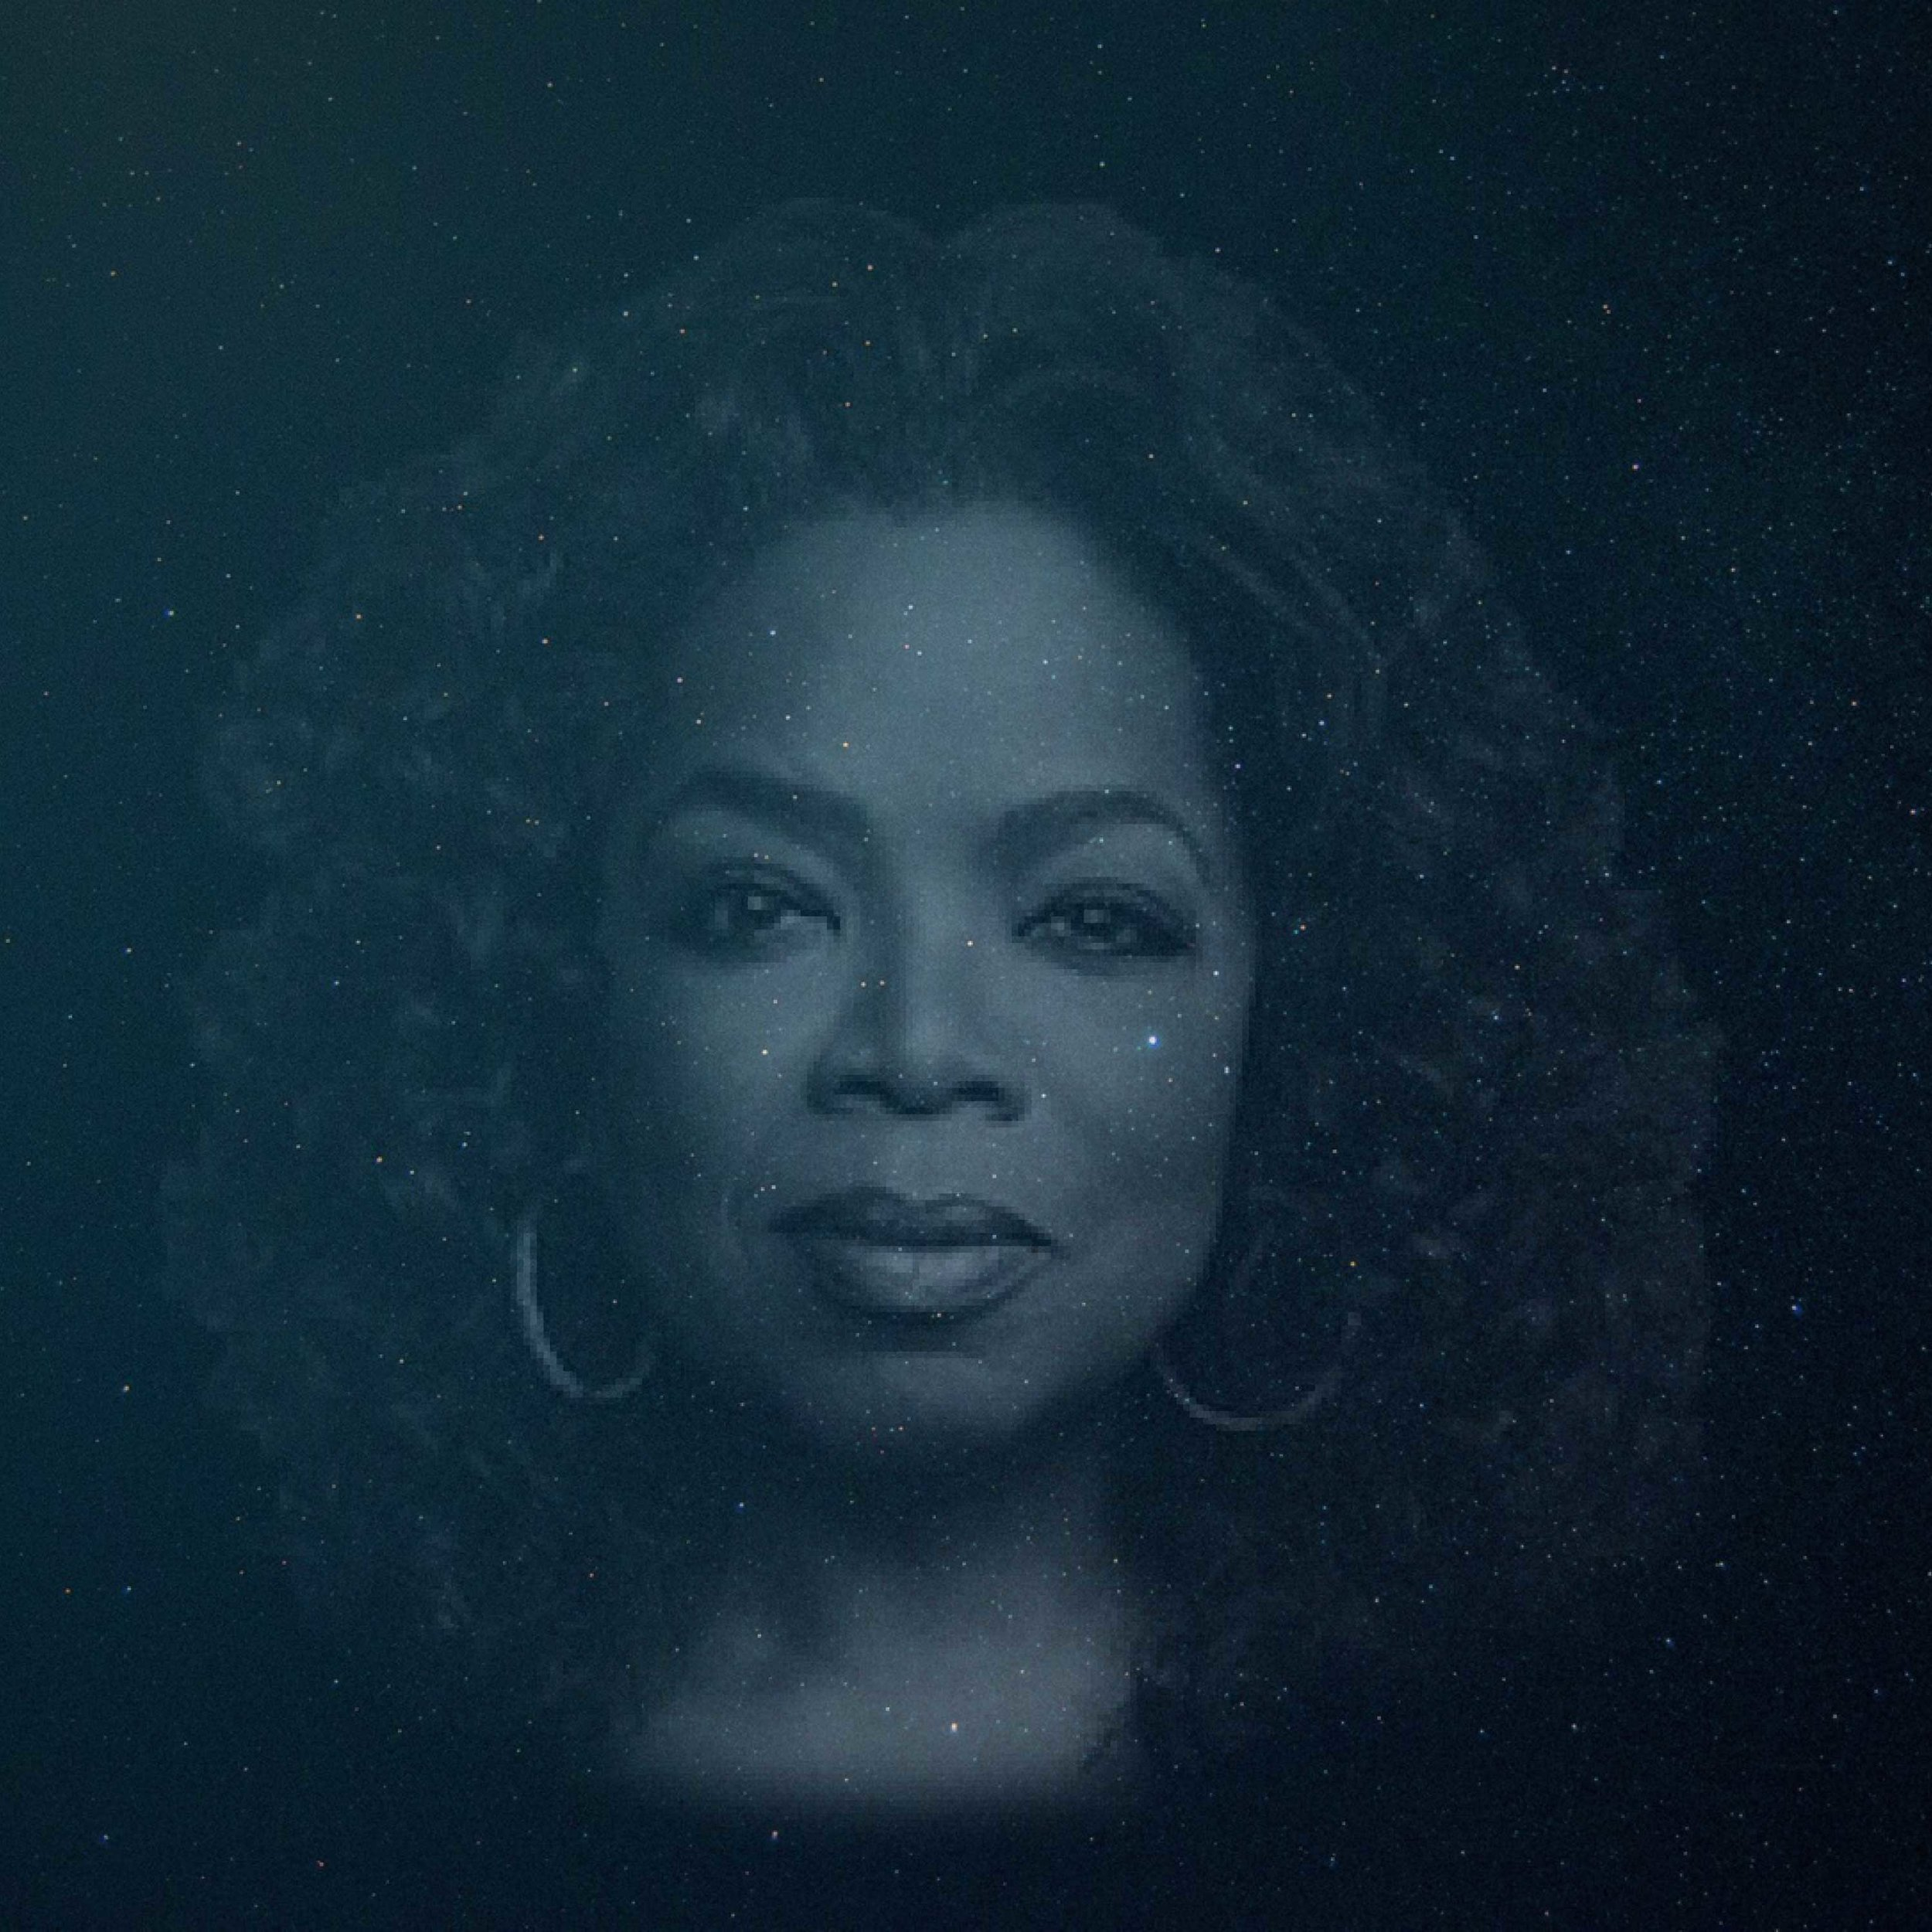 When you align your personality with your purpose, nobody can touch you - Oprah Winfrey